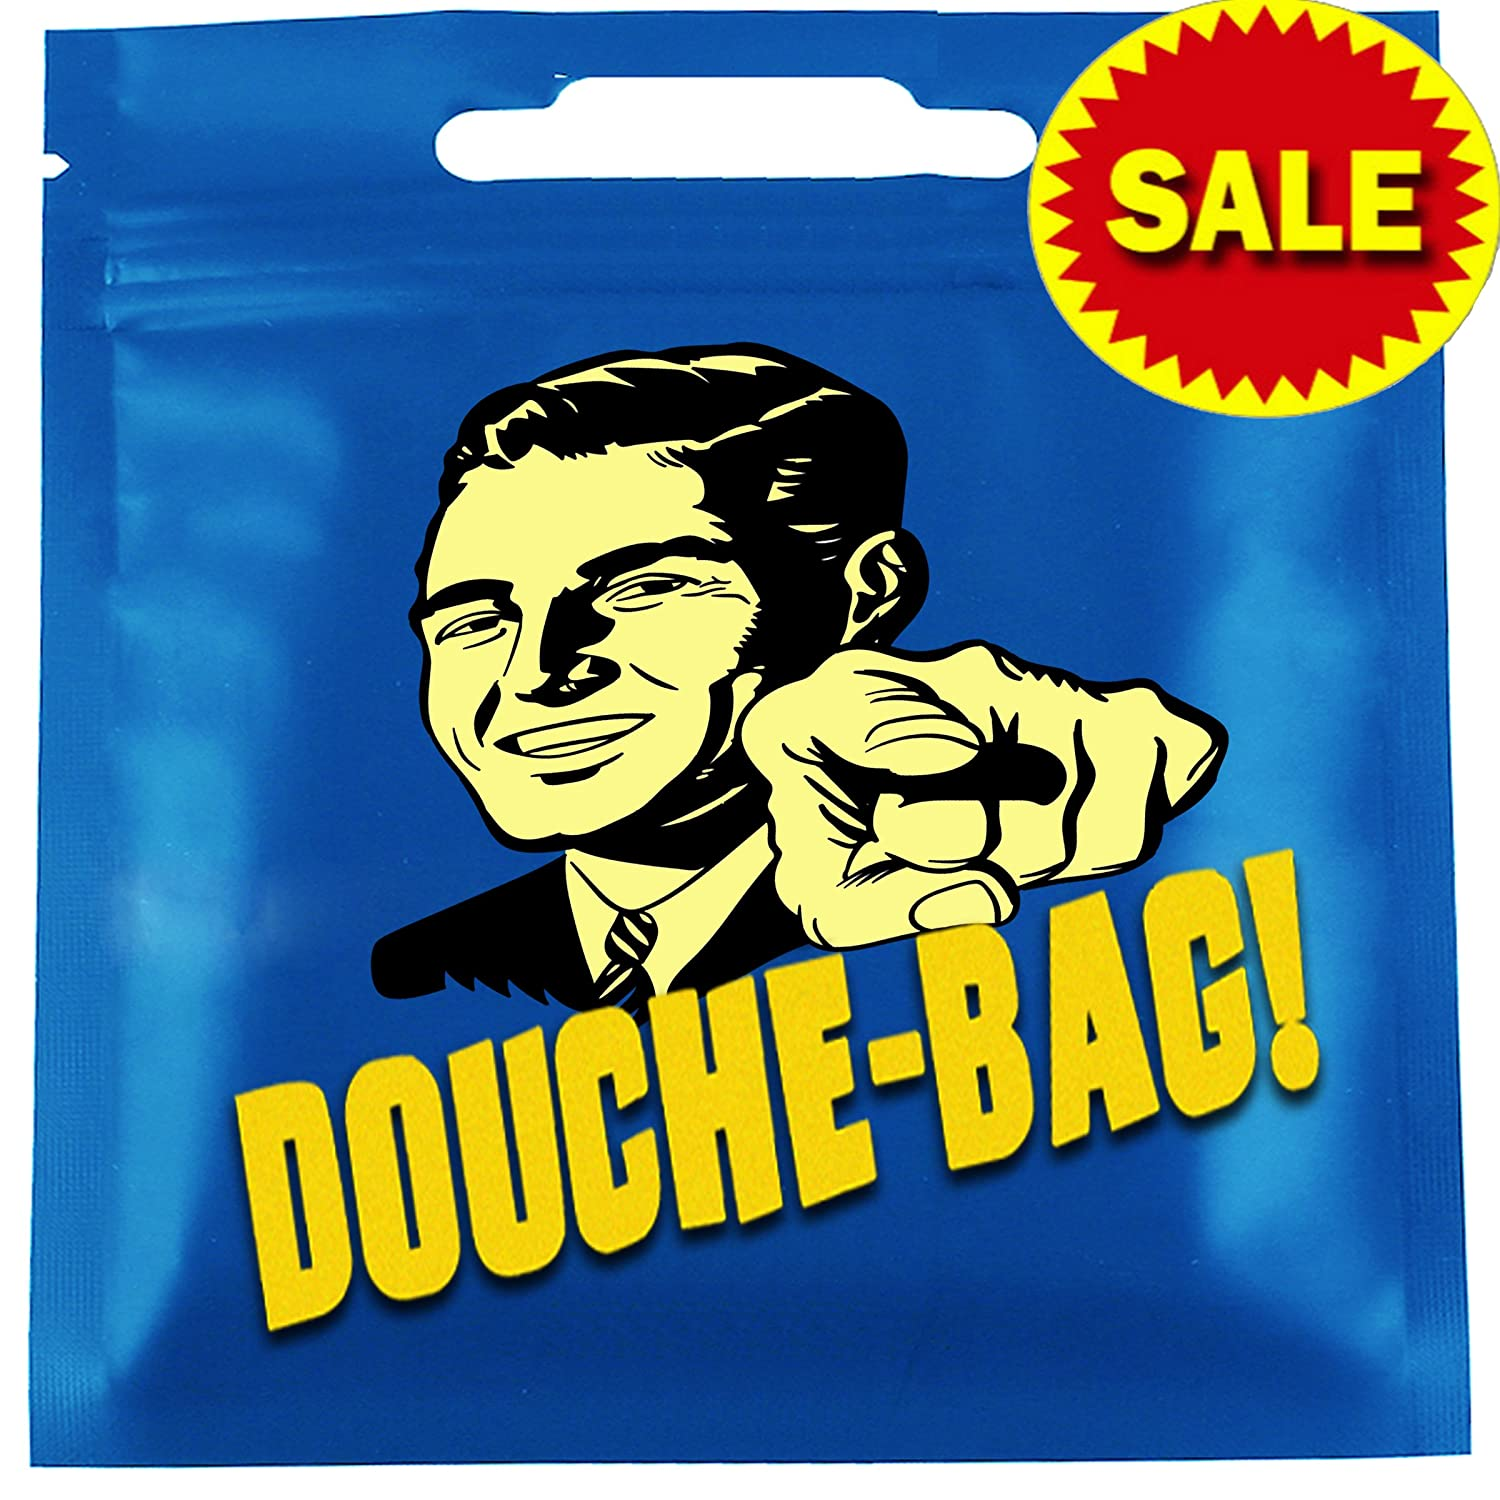 Amazon The Douche Bag Funny Novelty Christmas Birthday